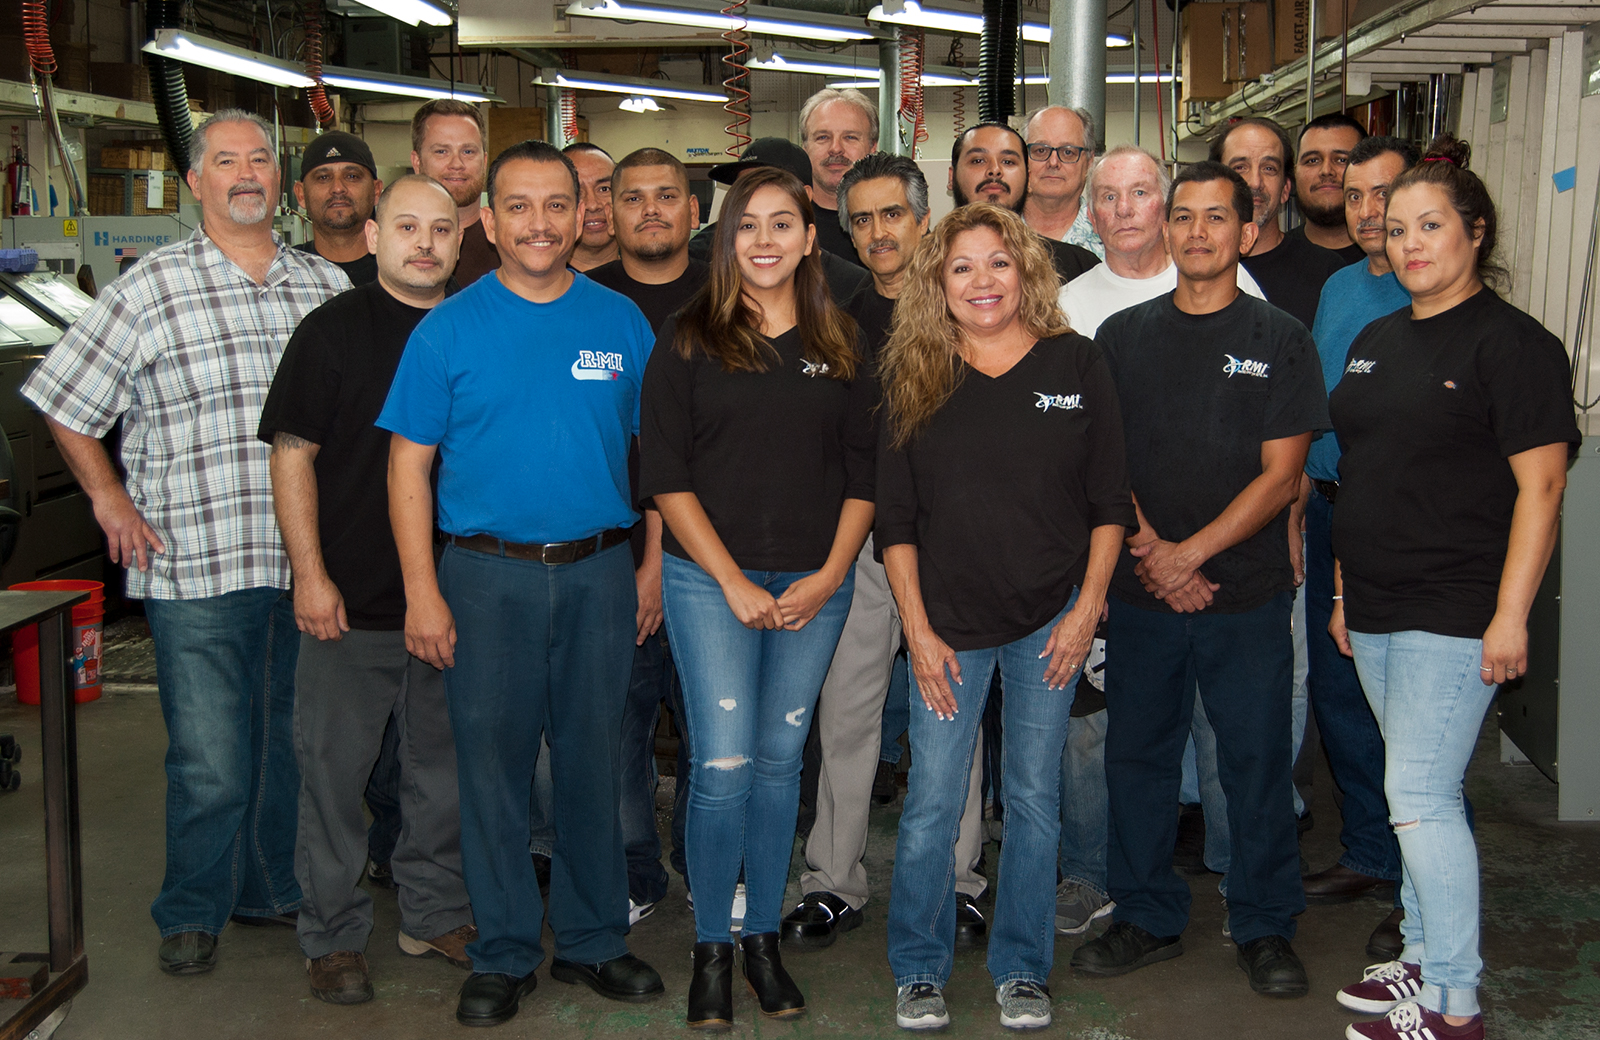 rothlisberger manufacturing group photo